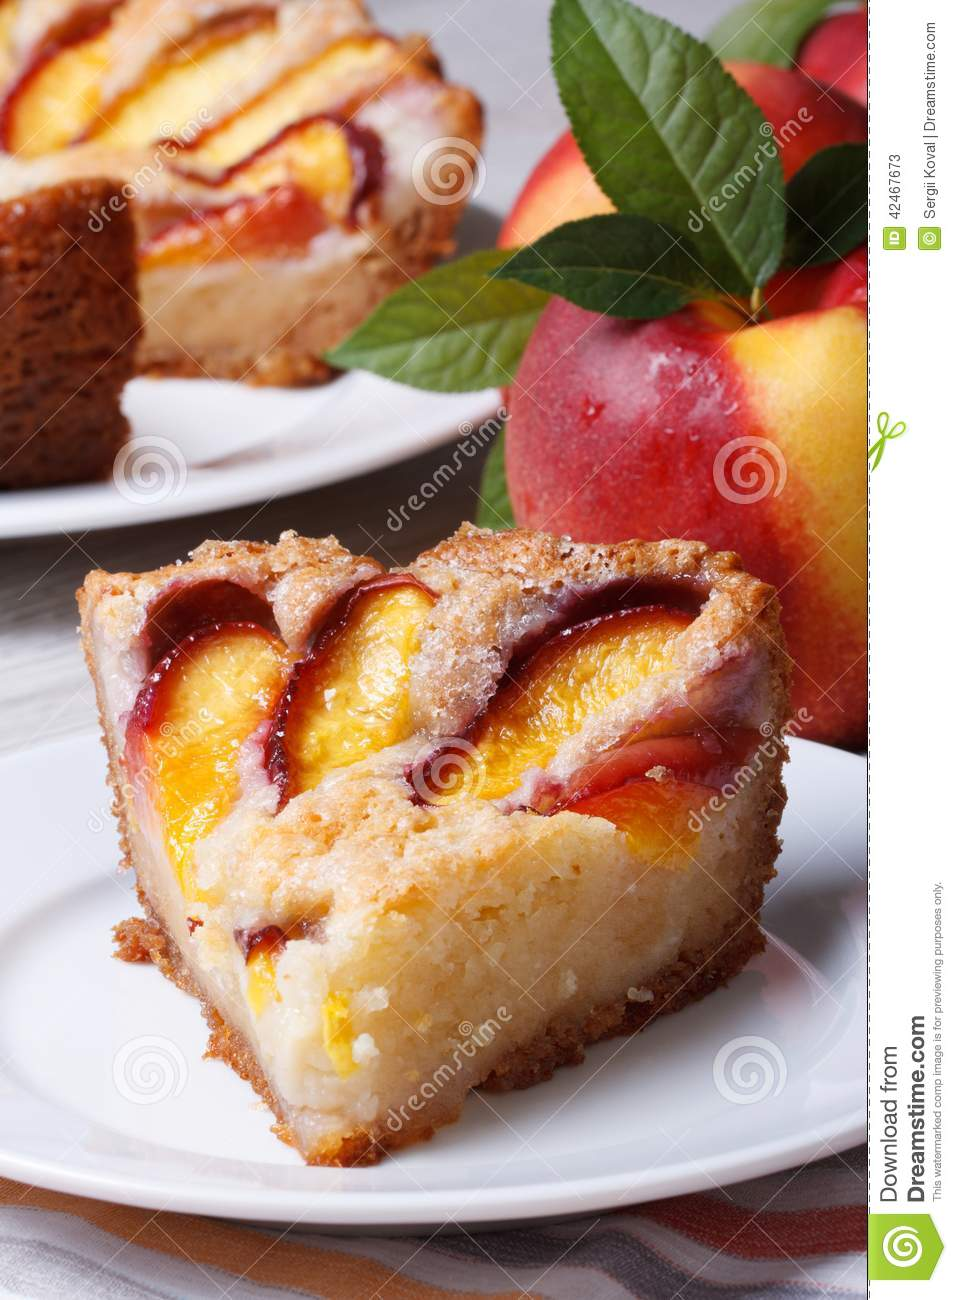 Slice Of Peach Pie On A White Plate Vertical Stock Photo   Image